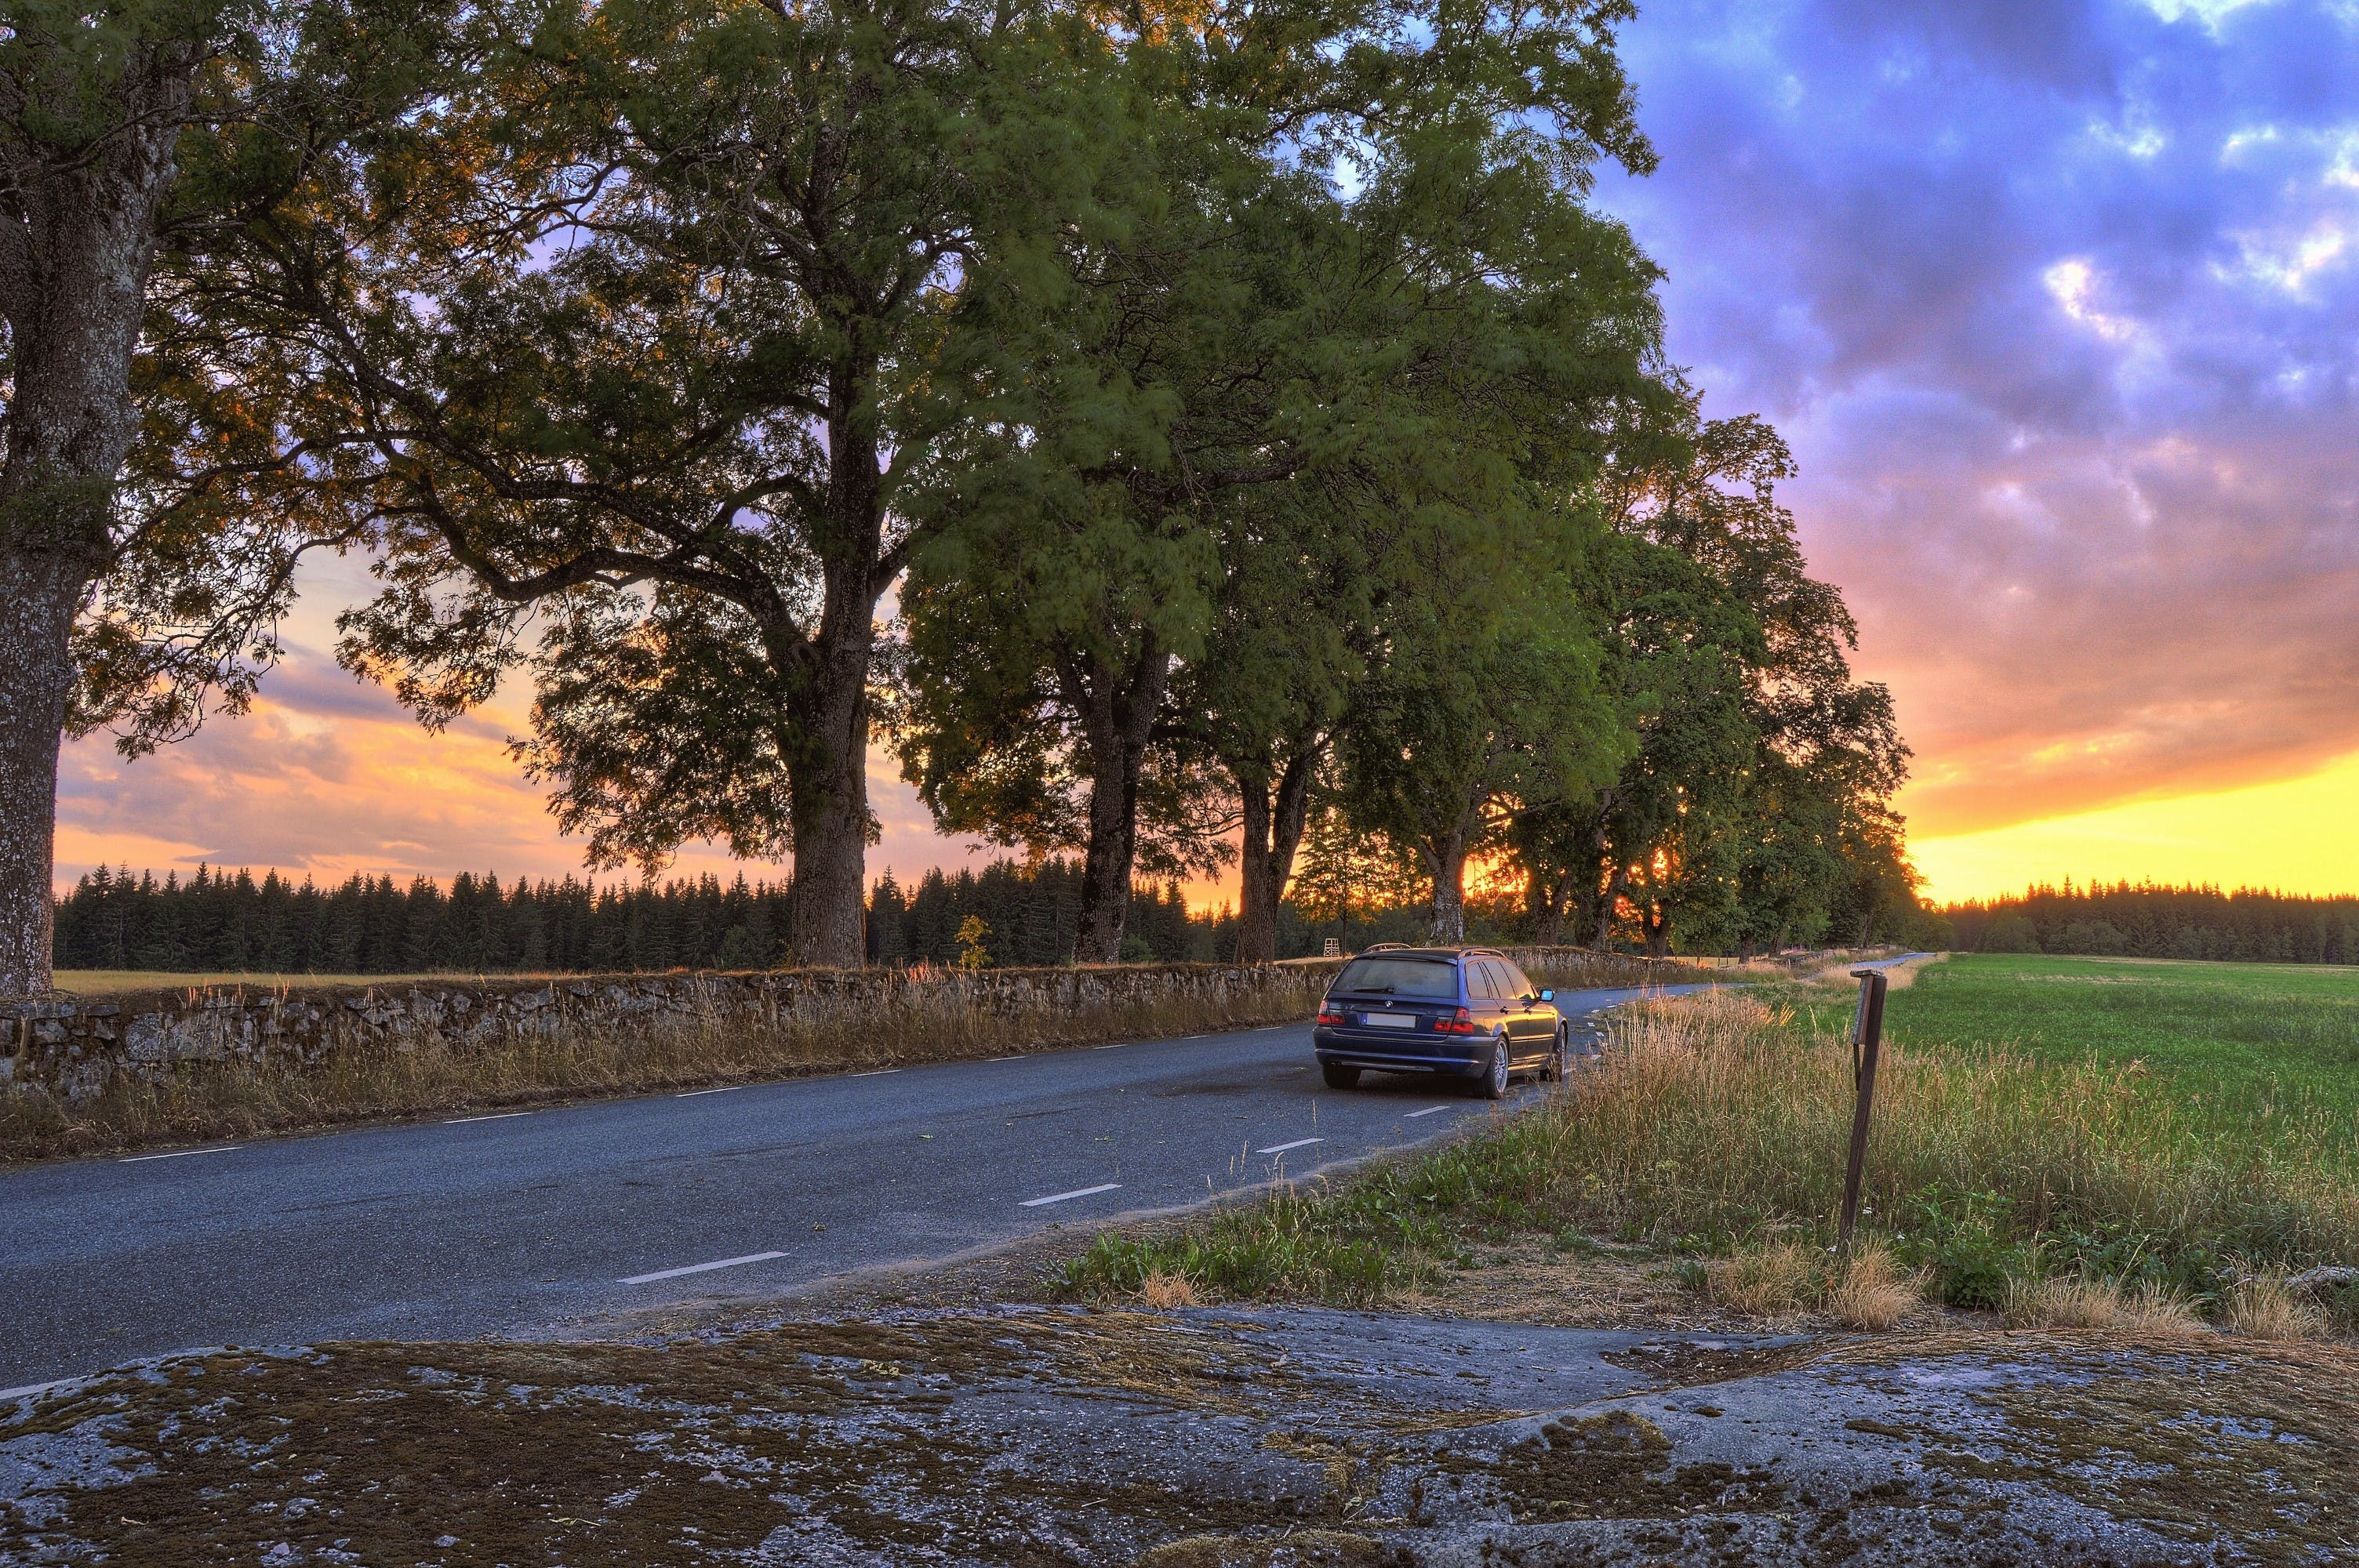 Hatchback On Road During Sunset